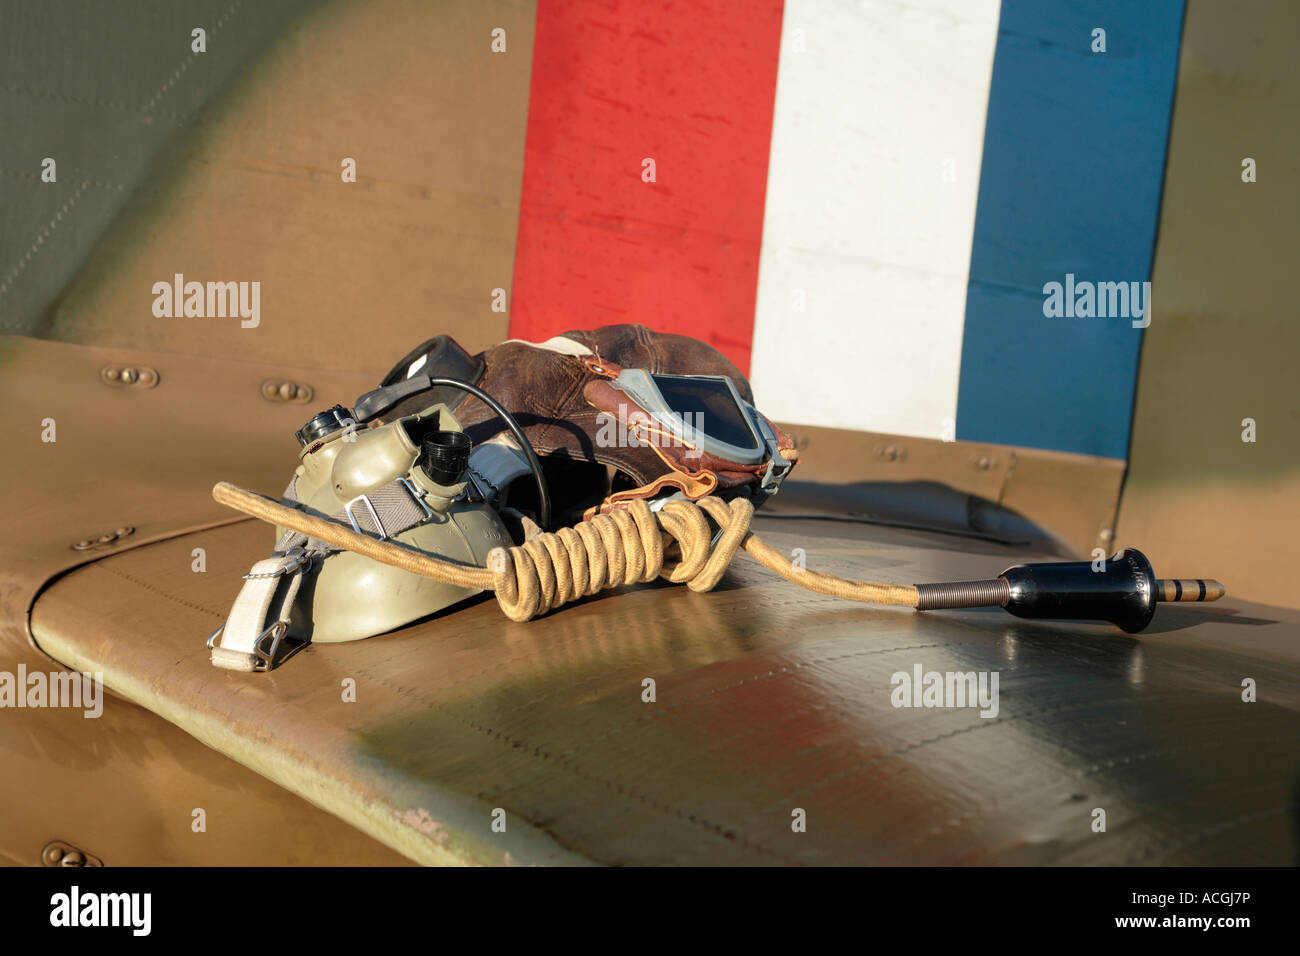 Old flying helmet and intercom on tailplane of a Hawker Hurricane - Stock Image